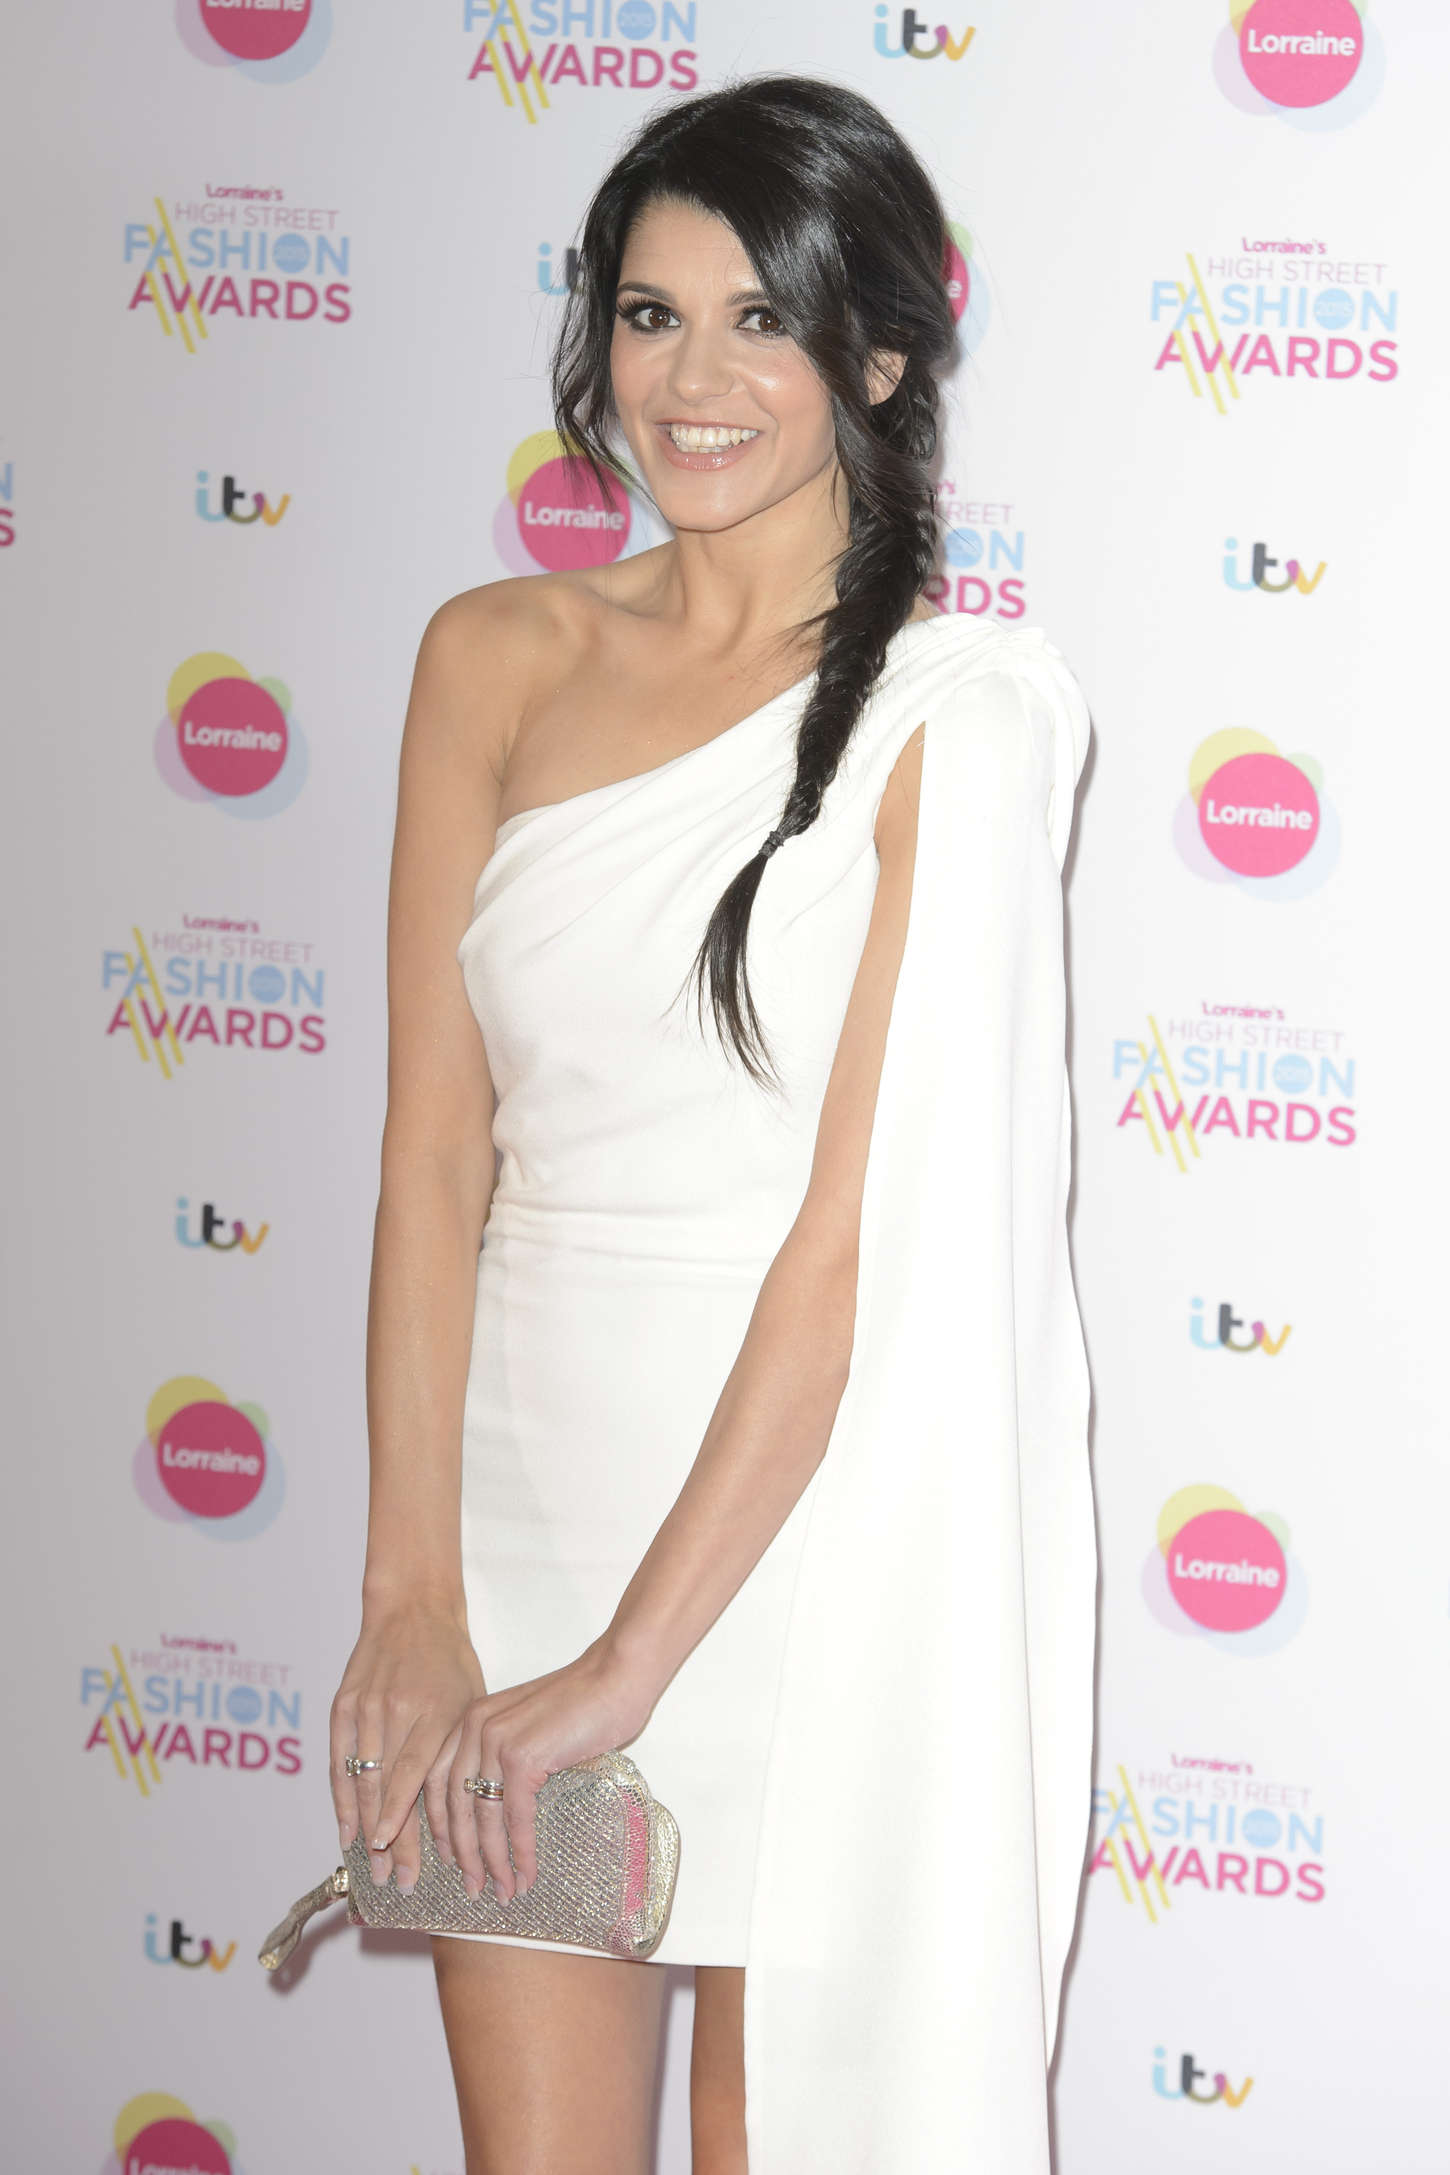 Natalie Anderson Lorraines High Street Fashion Awards at Grand Connaught Rooms in London